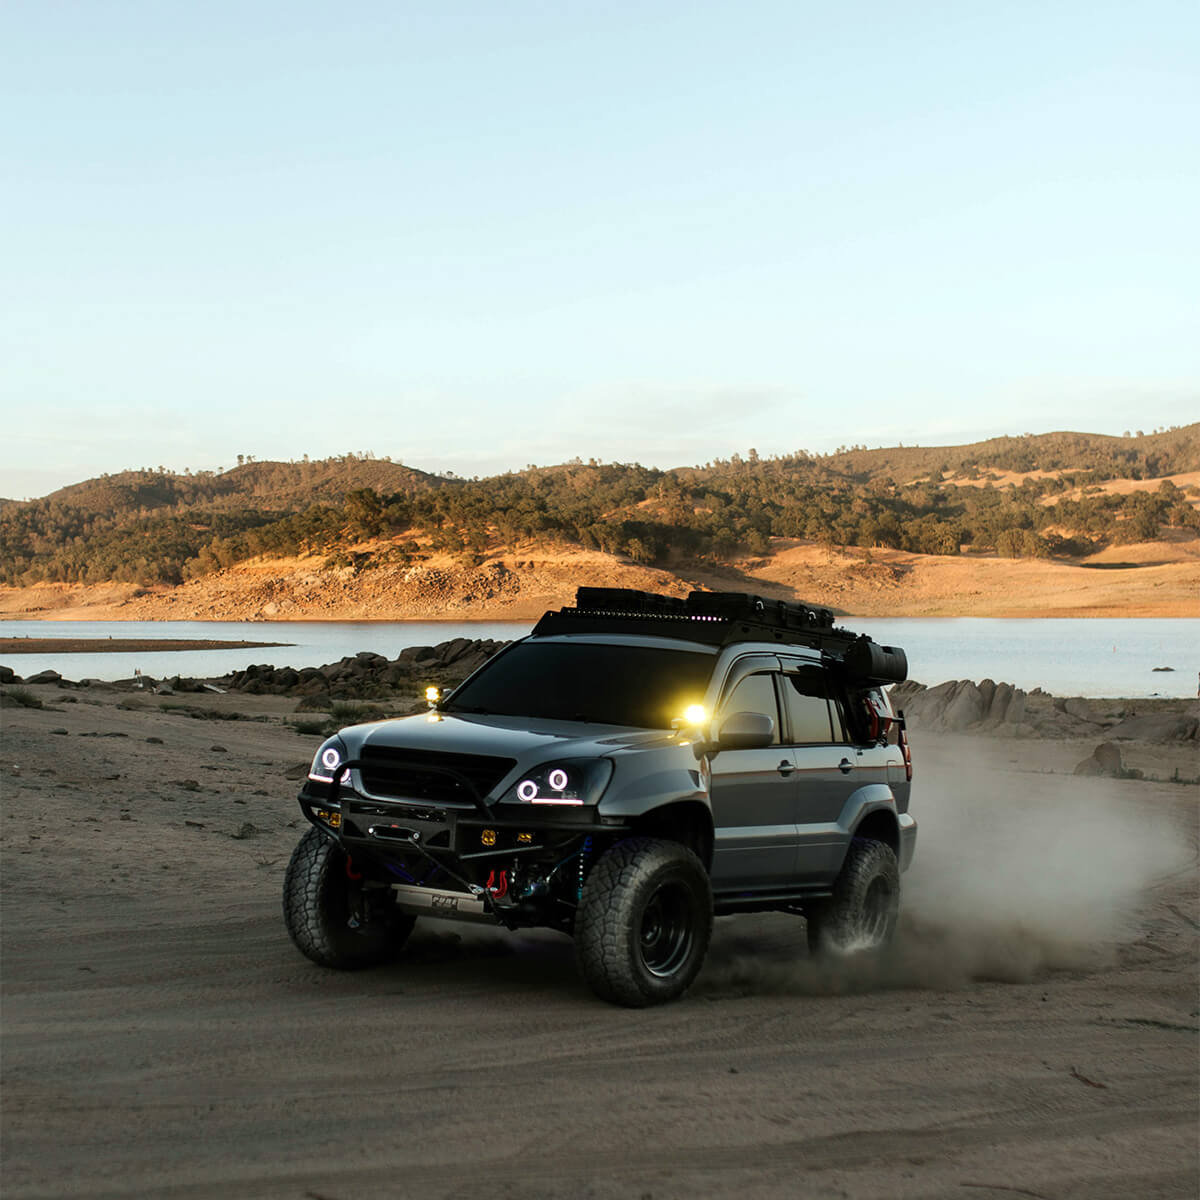 2005 Lexus GX470 offroading and modifications